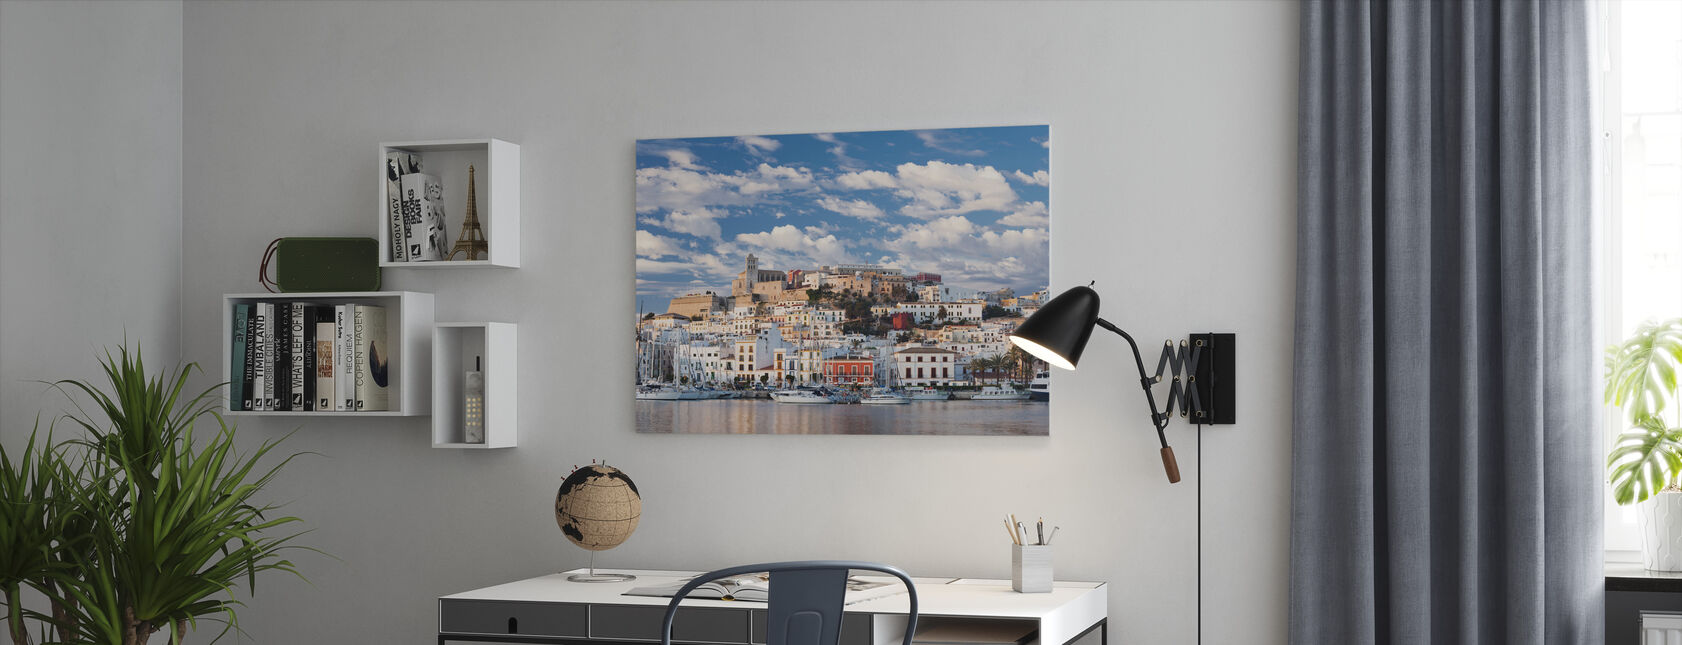 Ibiza Town - Canvas print - Office